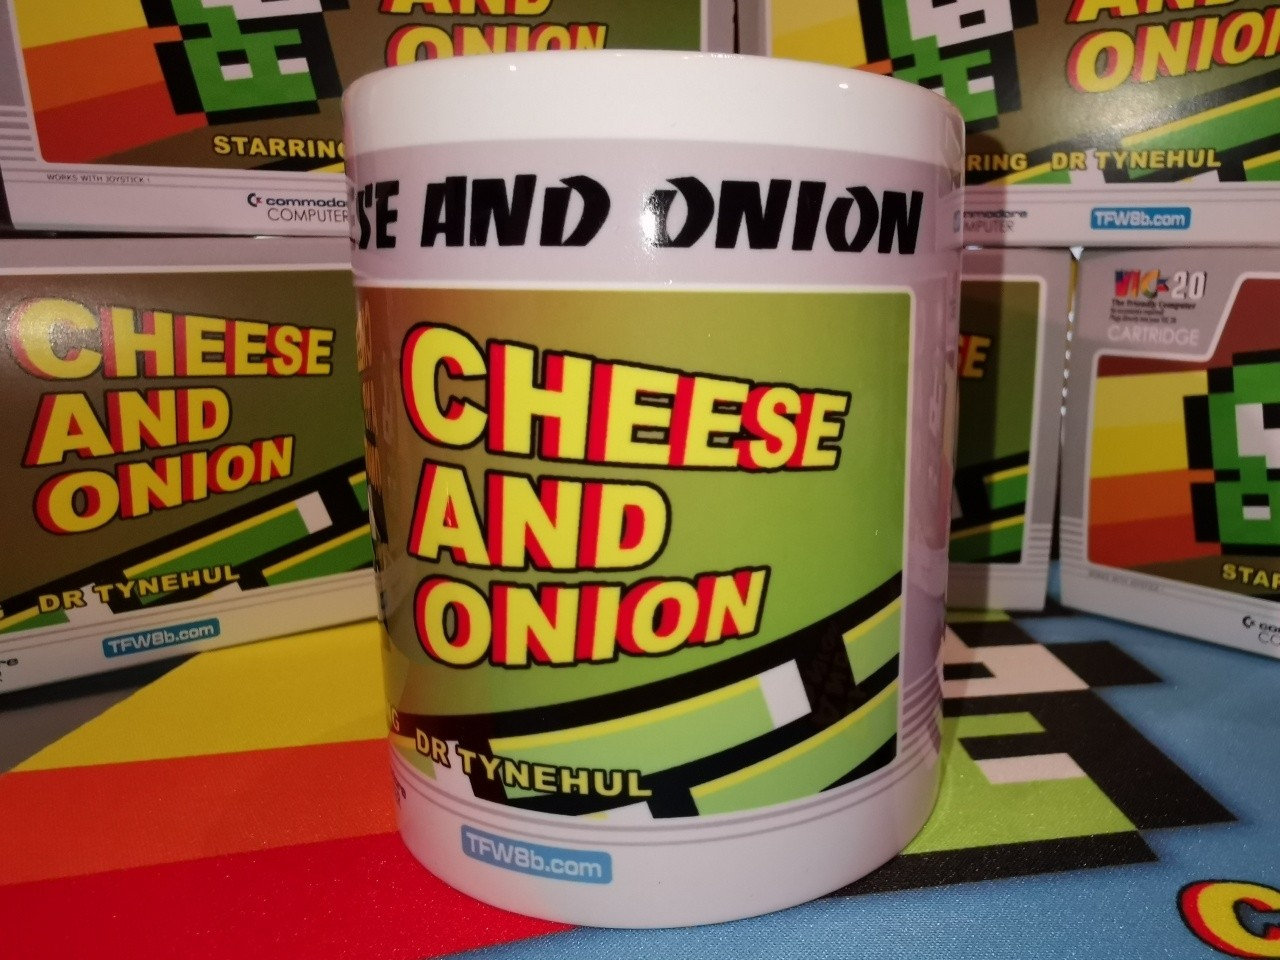 TFW8b Cheese and Onion Mug